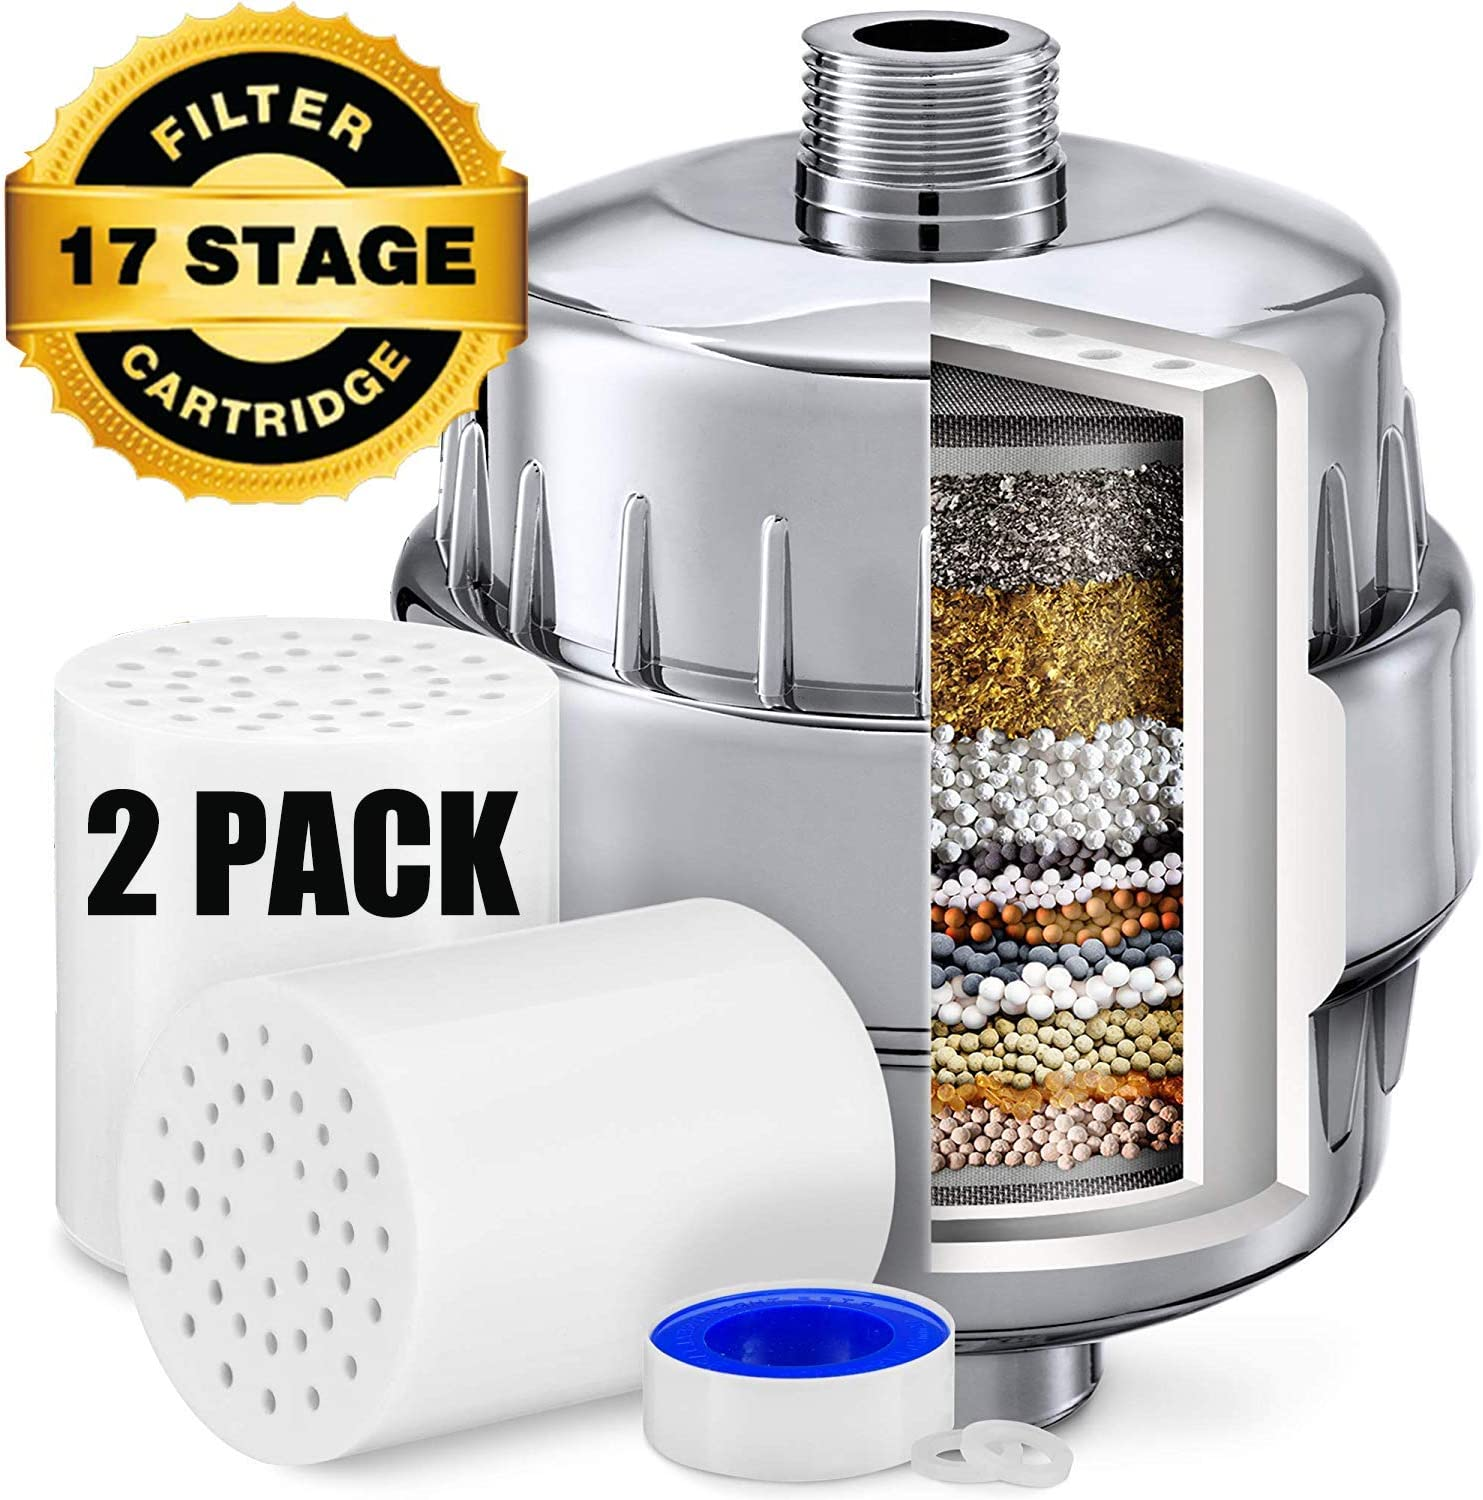 17 Stage Shower Filter for Hard Water - Remove Chlorine and Fluoride - Reduces Dry Itchy Skin,Dandruff, Eczema,Improves The Condition of Skin,Hair and Nails - 2 Replacement Filter Cartridges